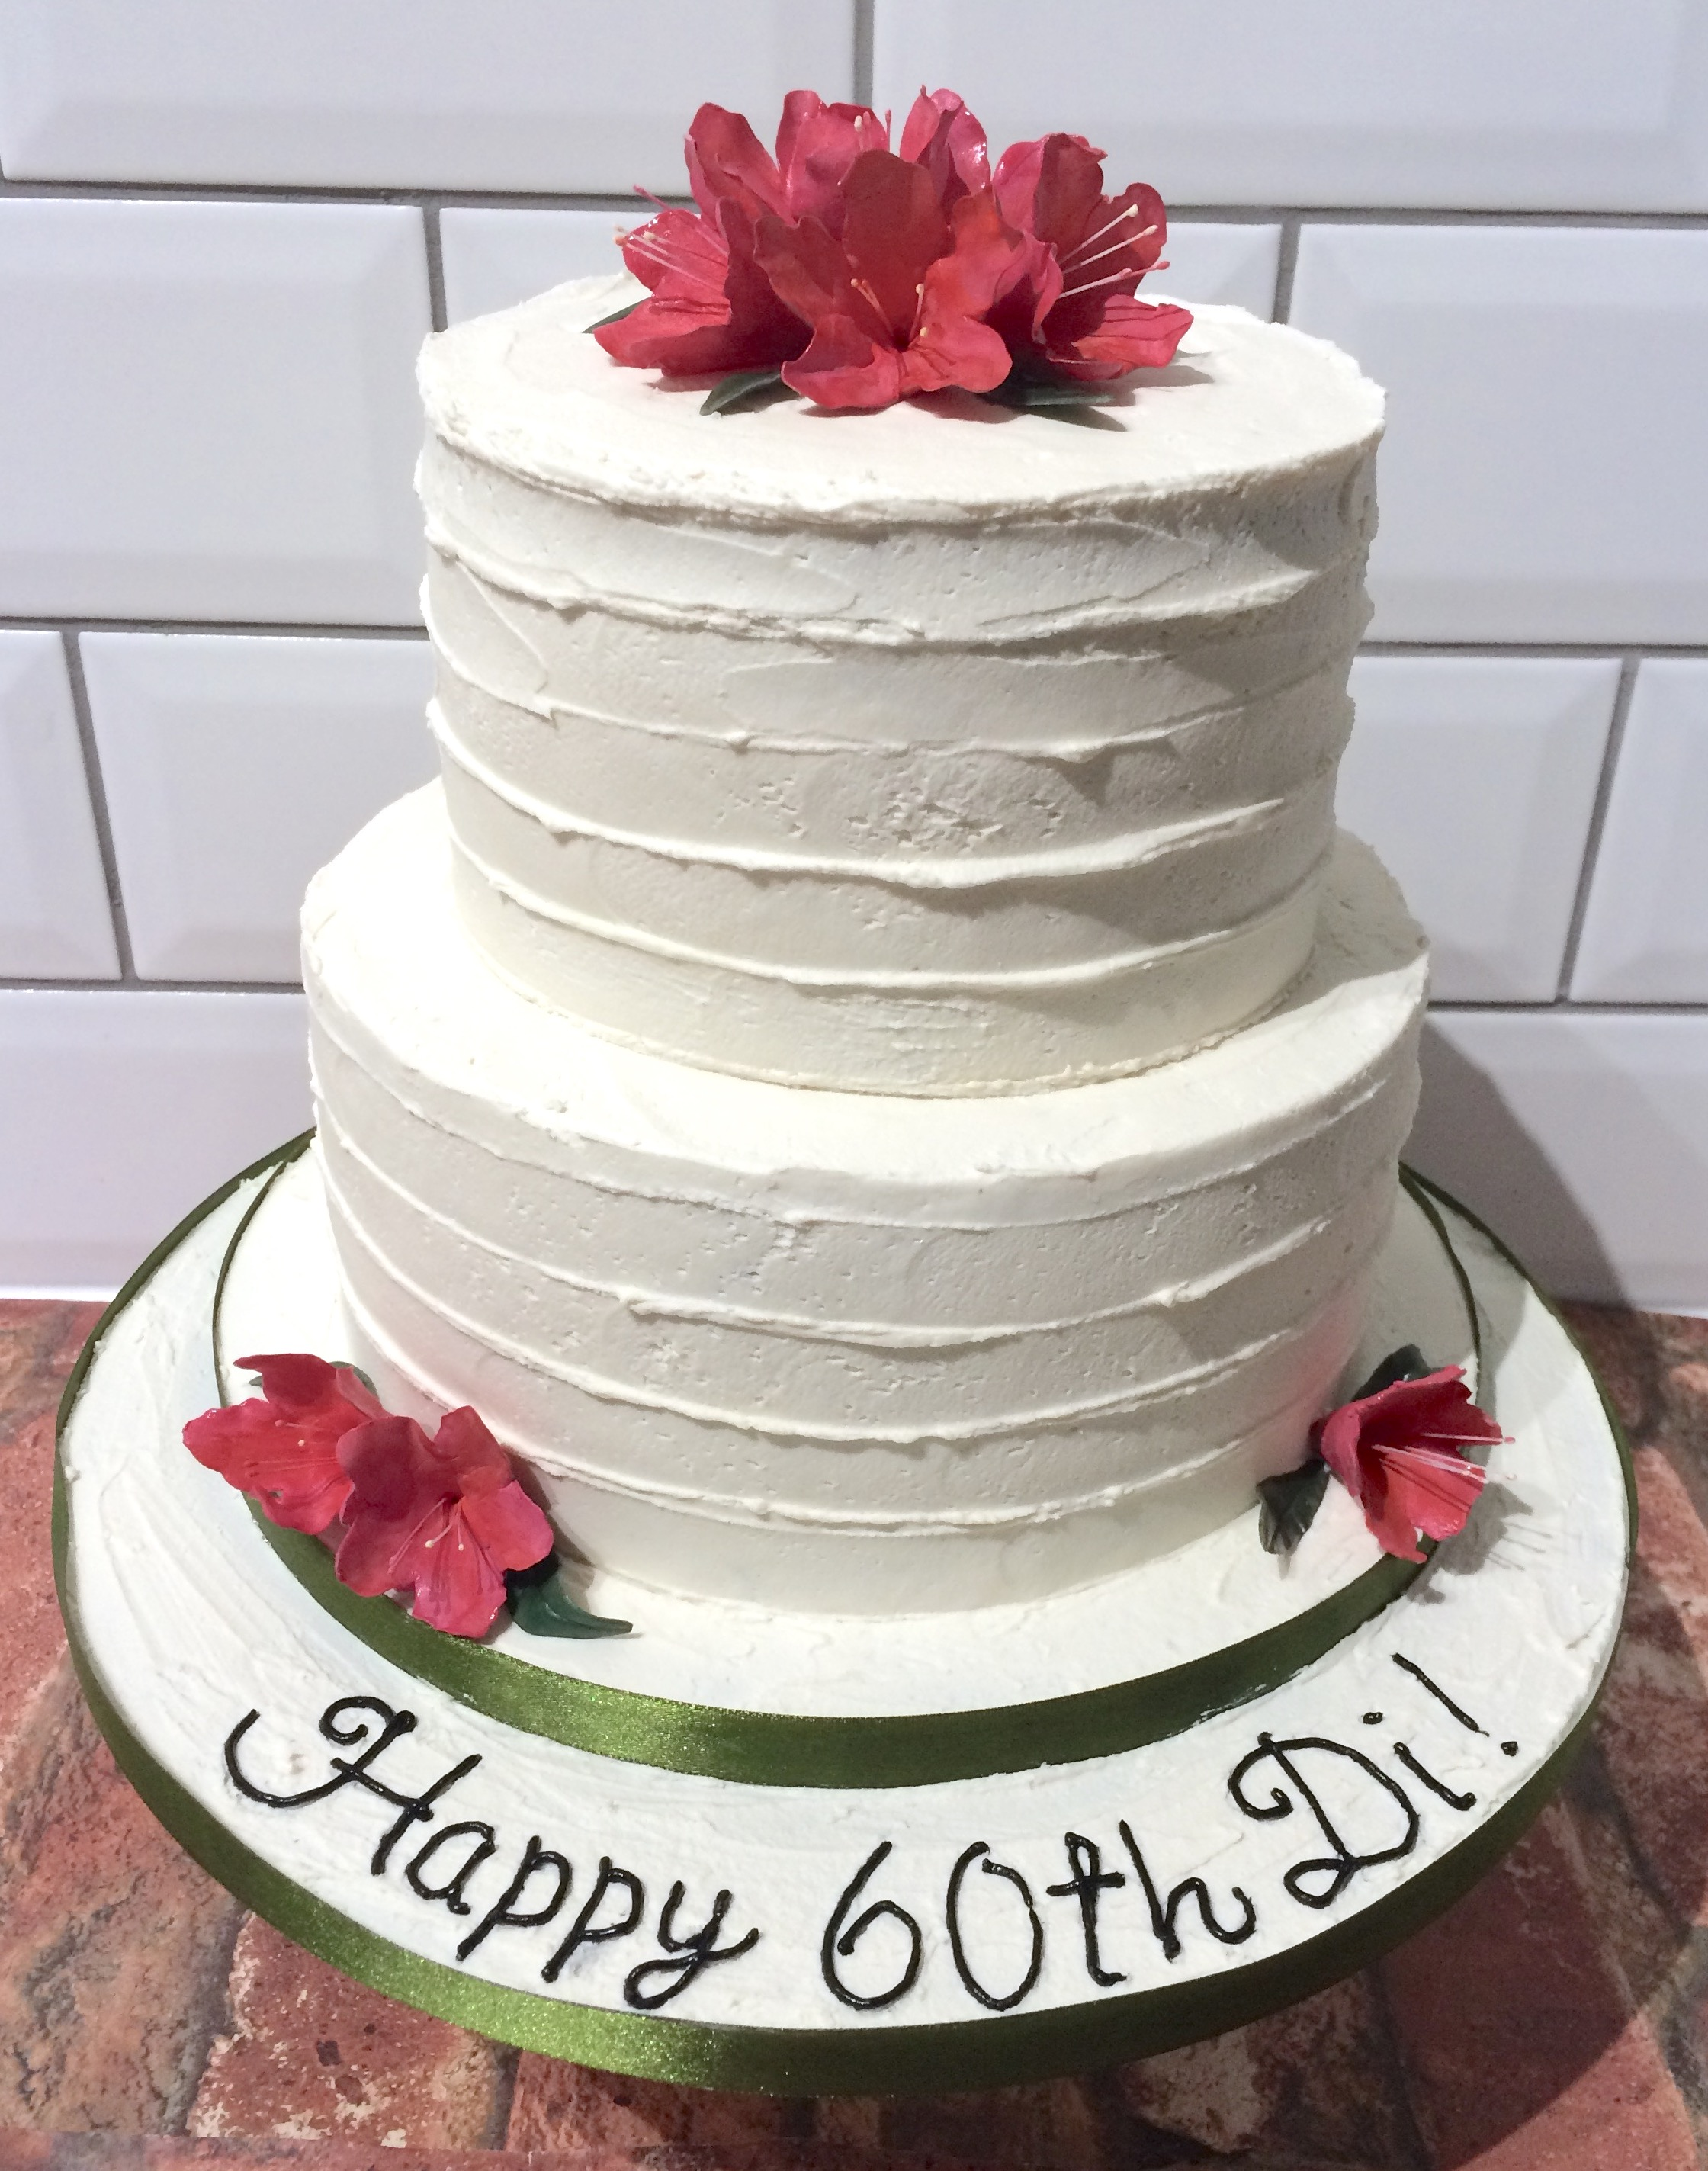 Rhododendron Buttercream Birthday Cake